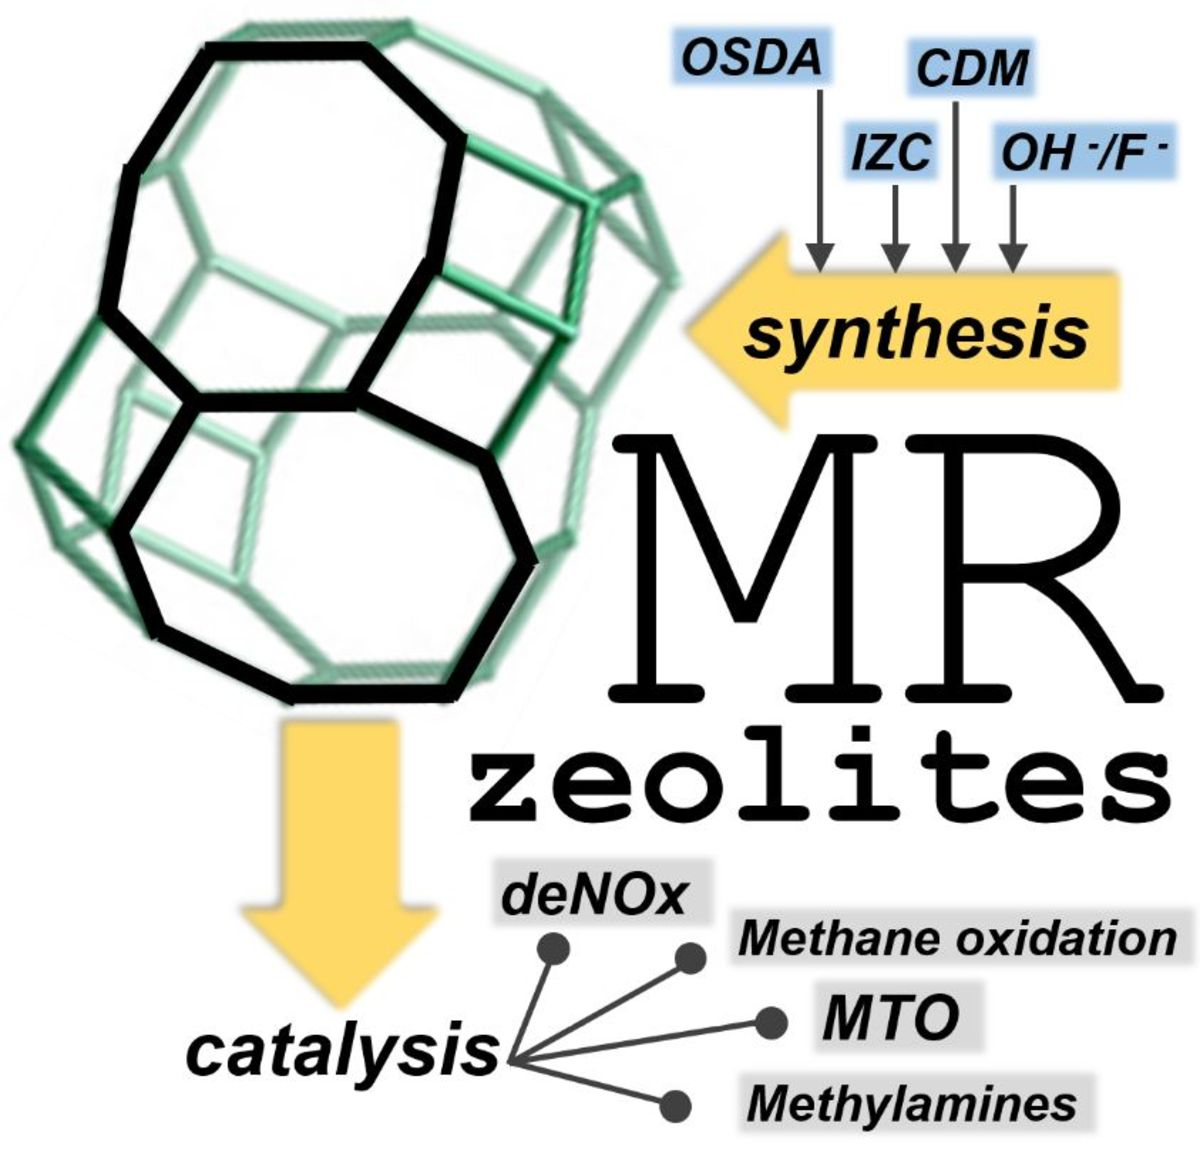 Small-Pore Zeolites: Synthesis and Catalysis